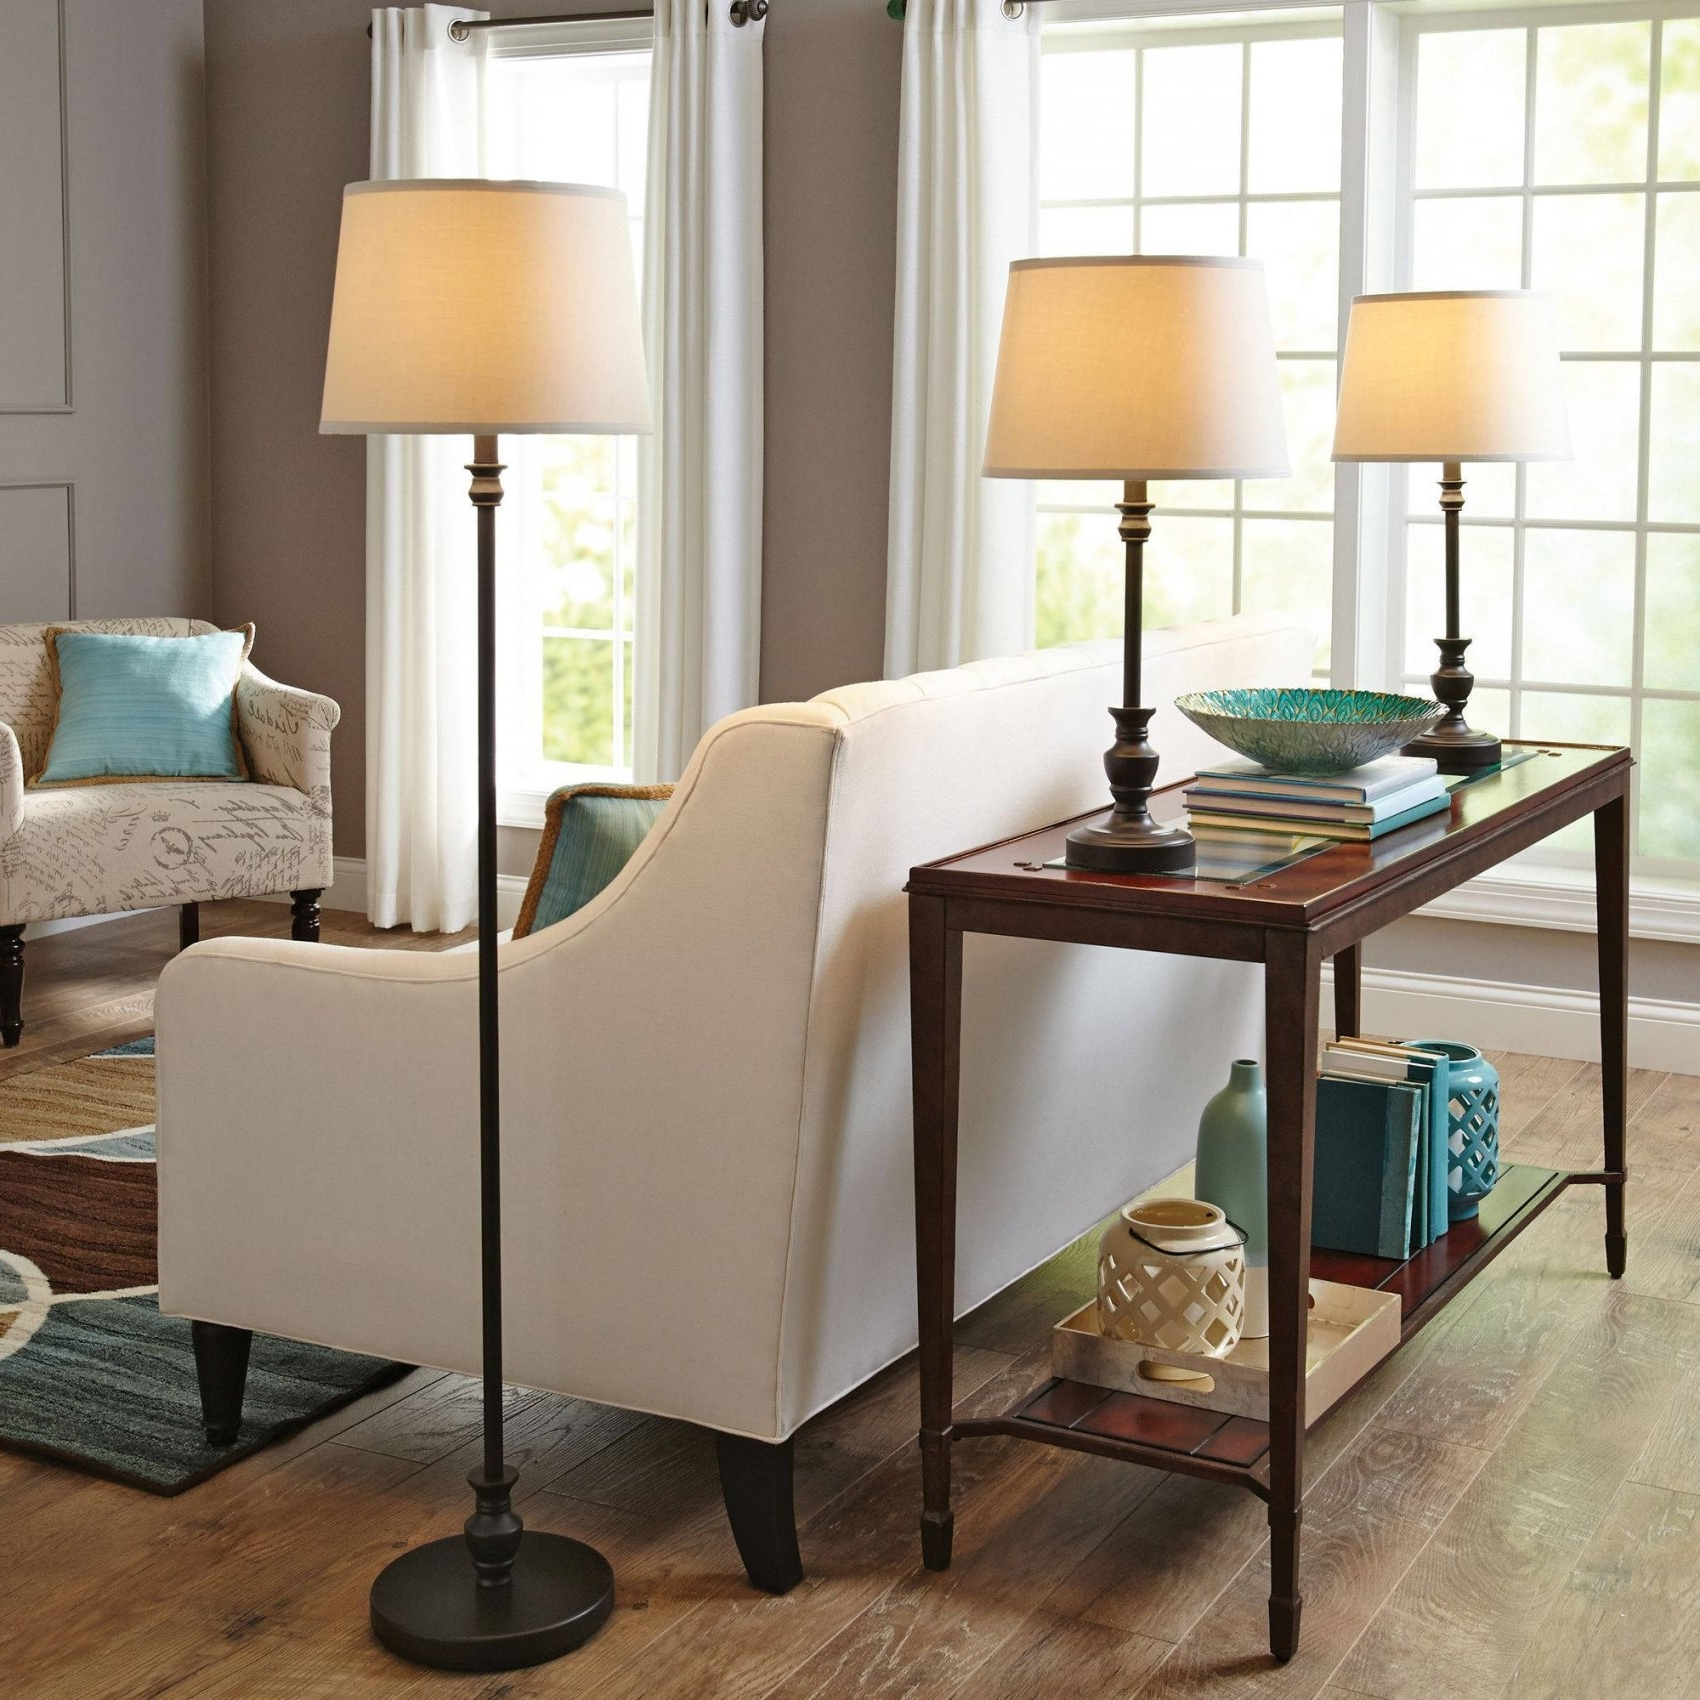 Bronze Living Room Table Lamps In Latest Better Homes & Gardens 3 Piece Lamp Set, Bronze Finish – Walmart (View 3 of 20)